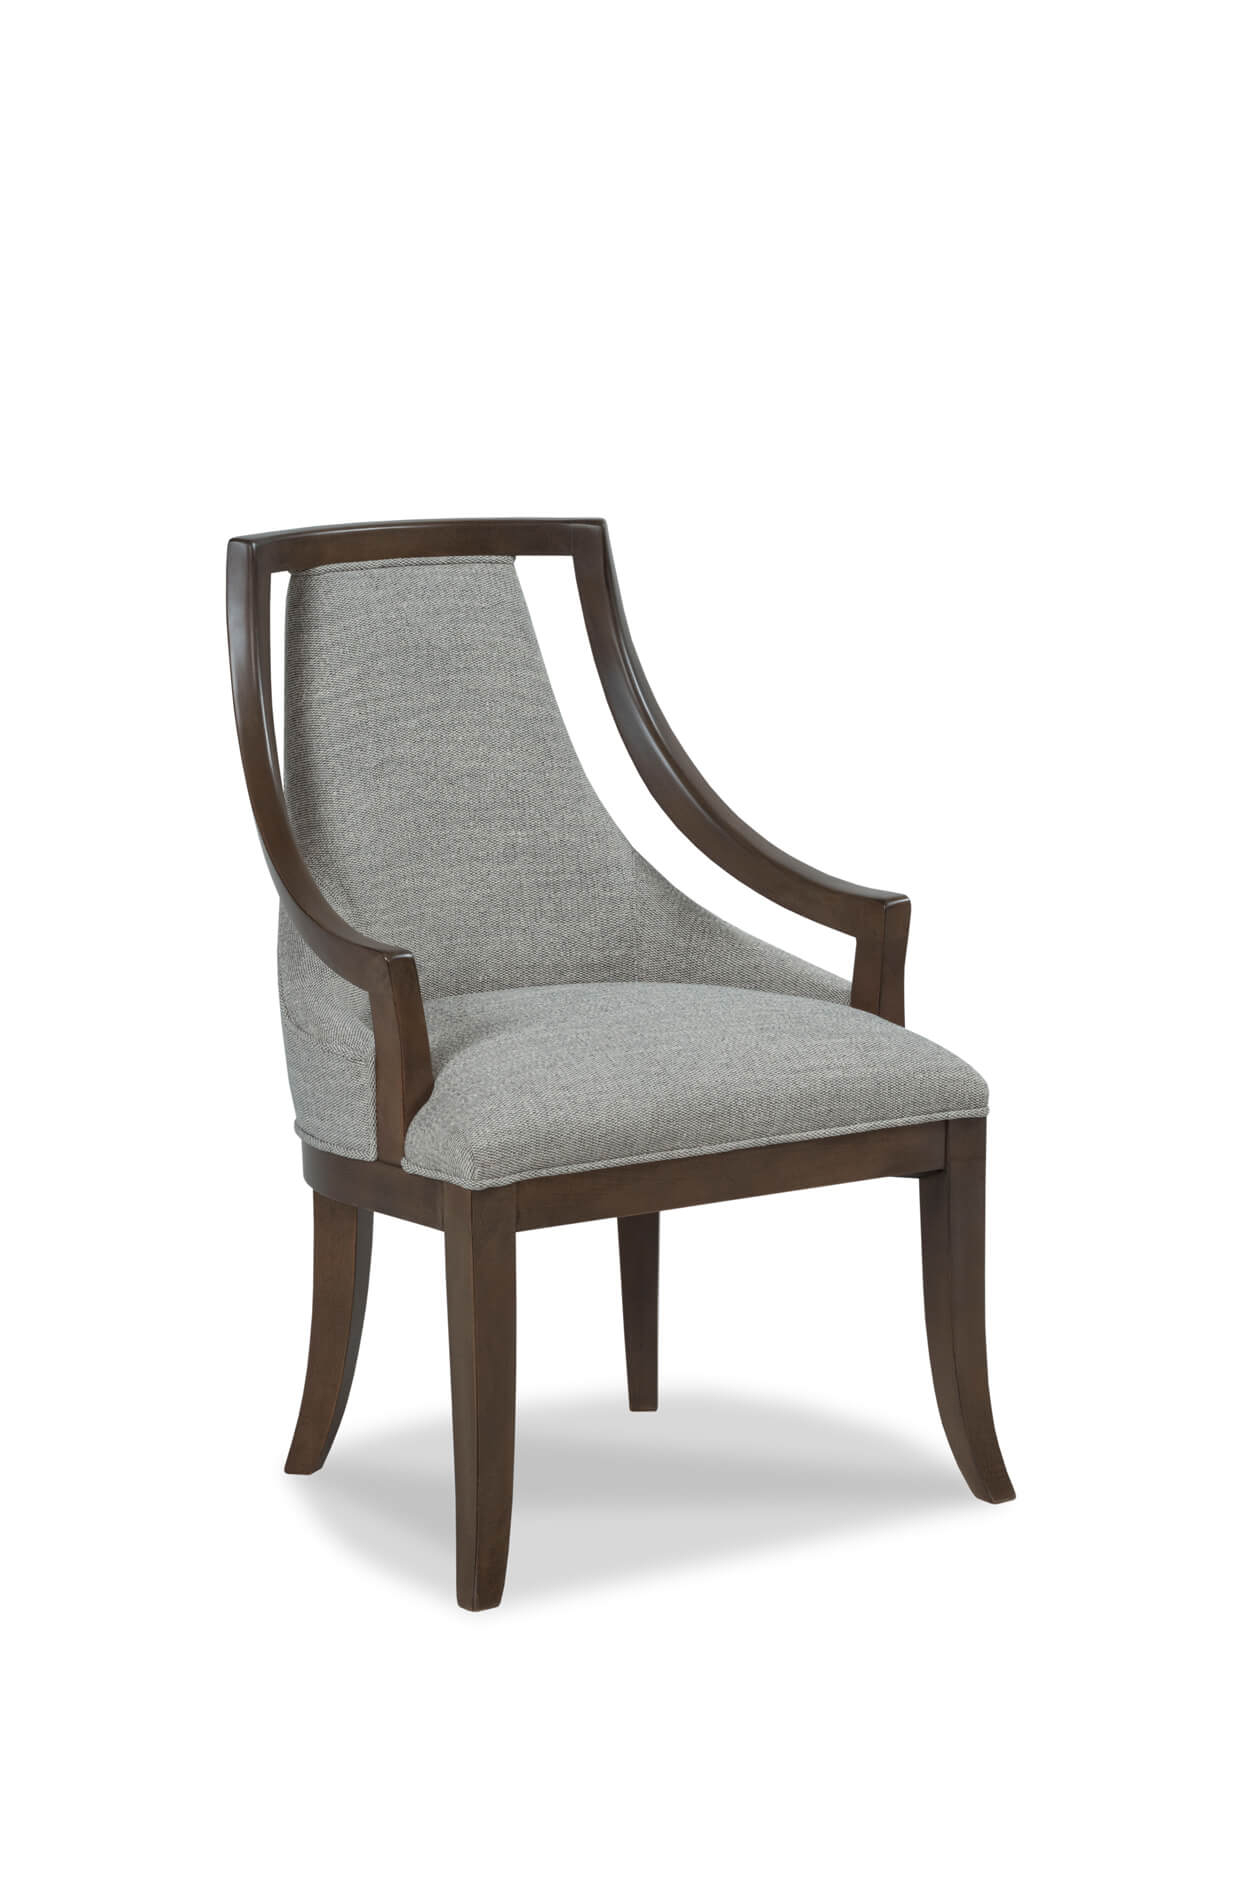 Caldwell Upholstered Dining Arm Chair Regarding Caldwell Armchairs (View 2 of 15)